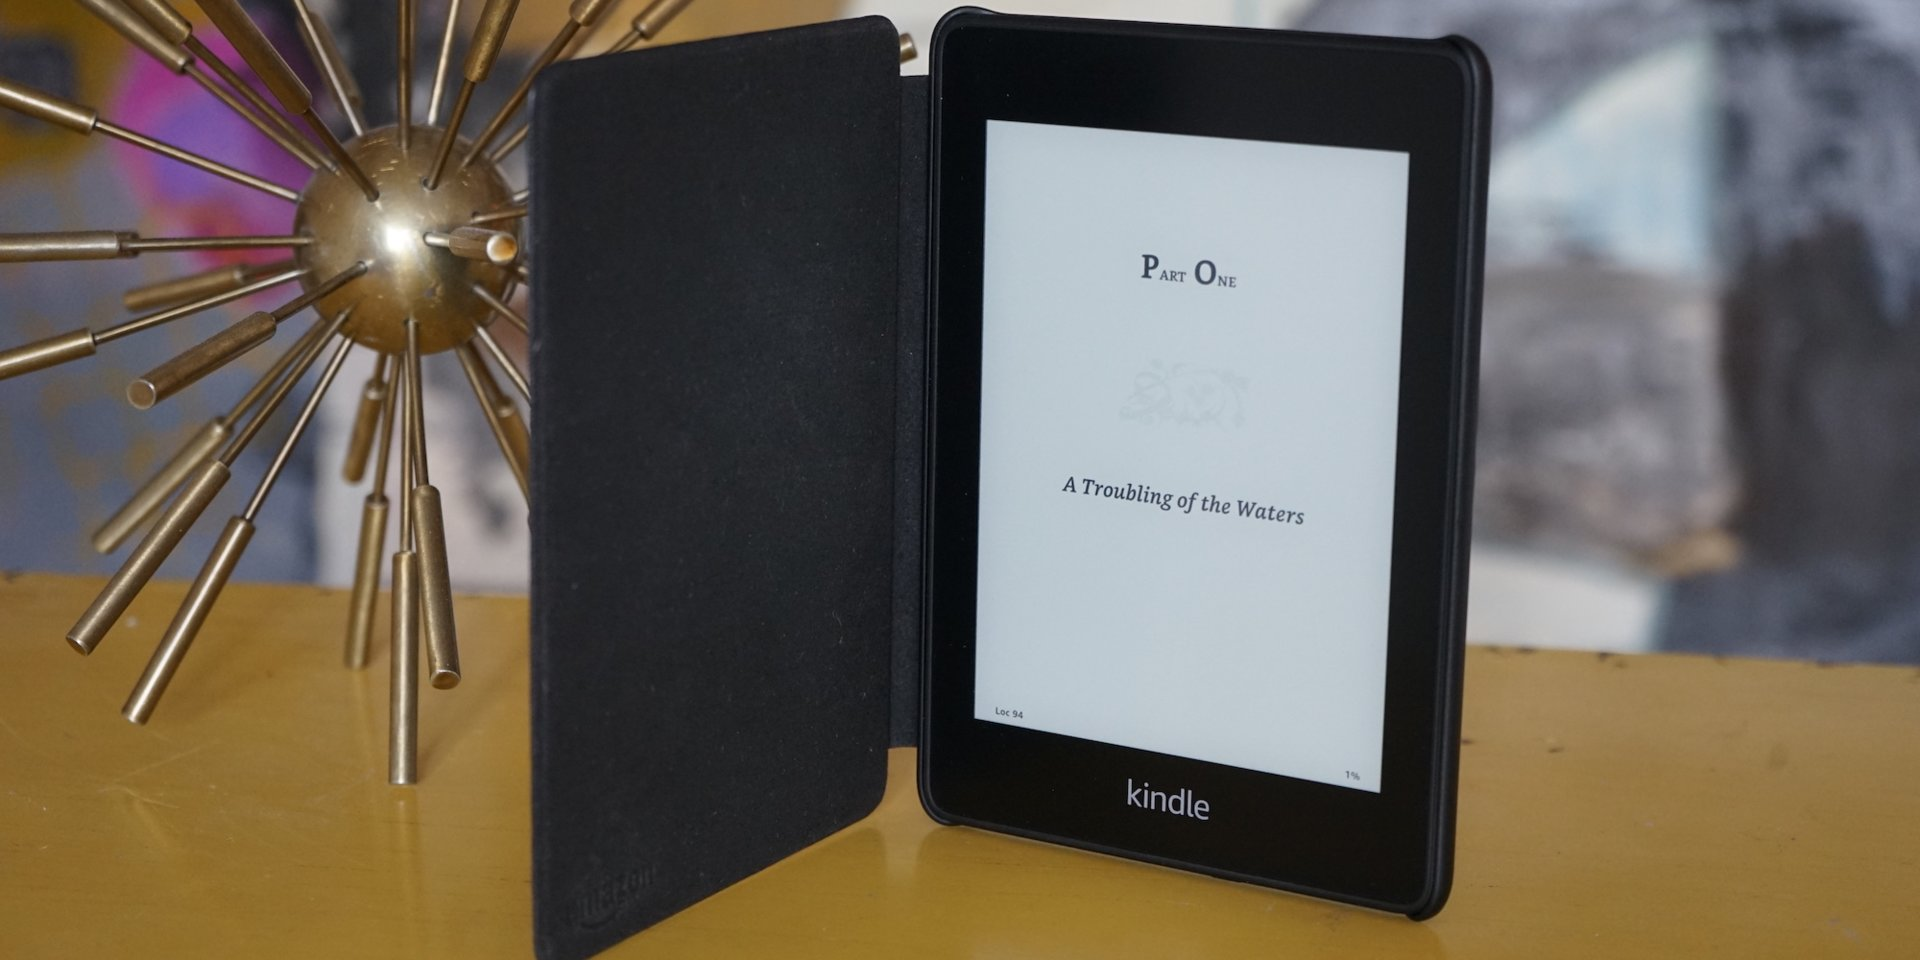 The Kindle Paperwhite is now $45 off on Amazon for Prime members